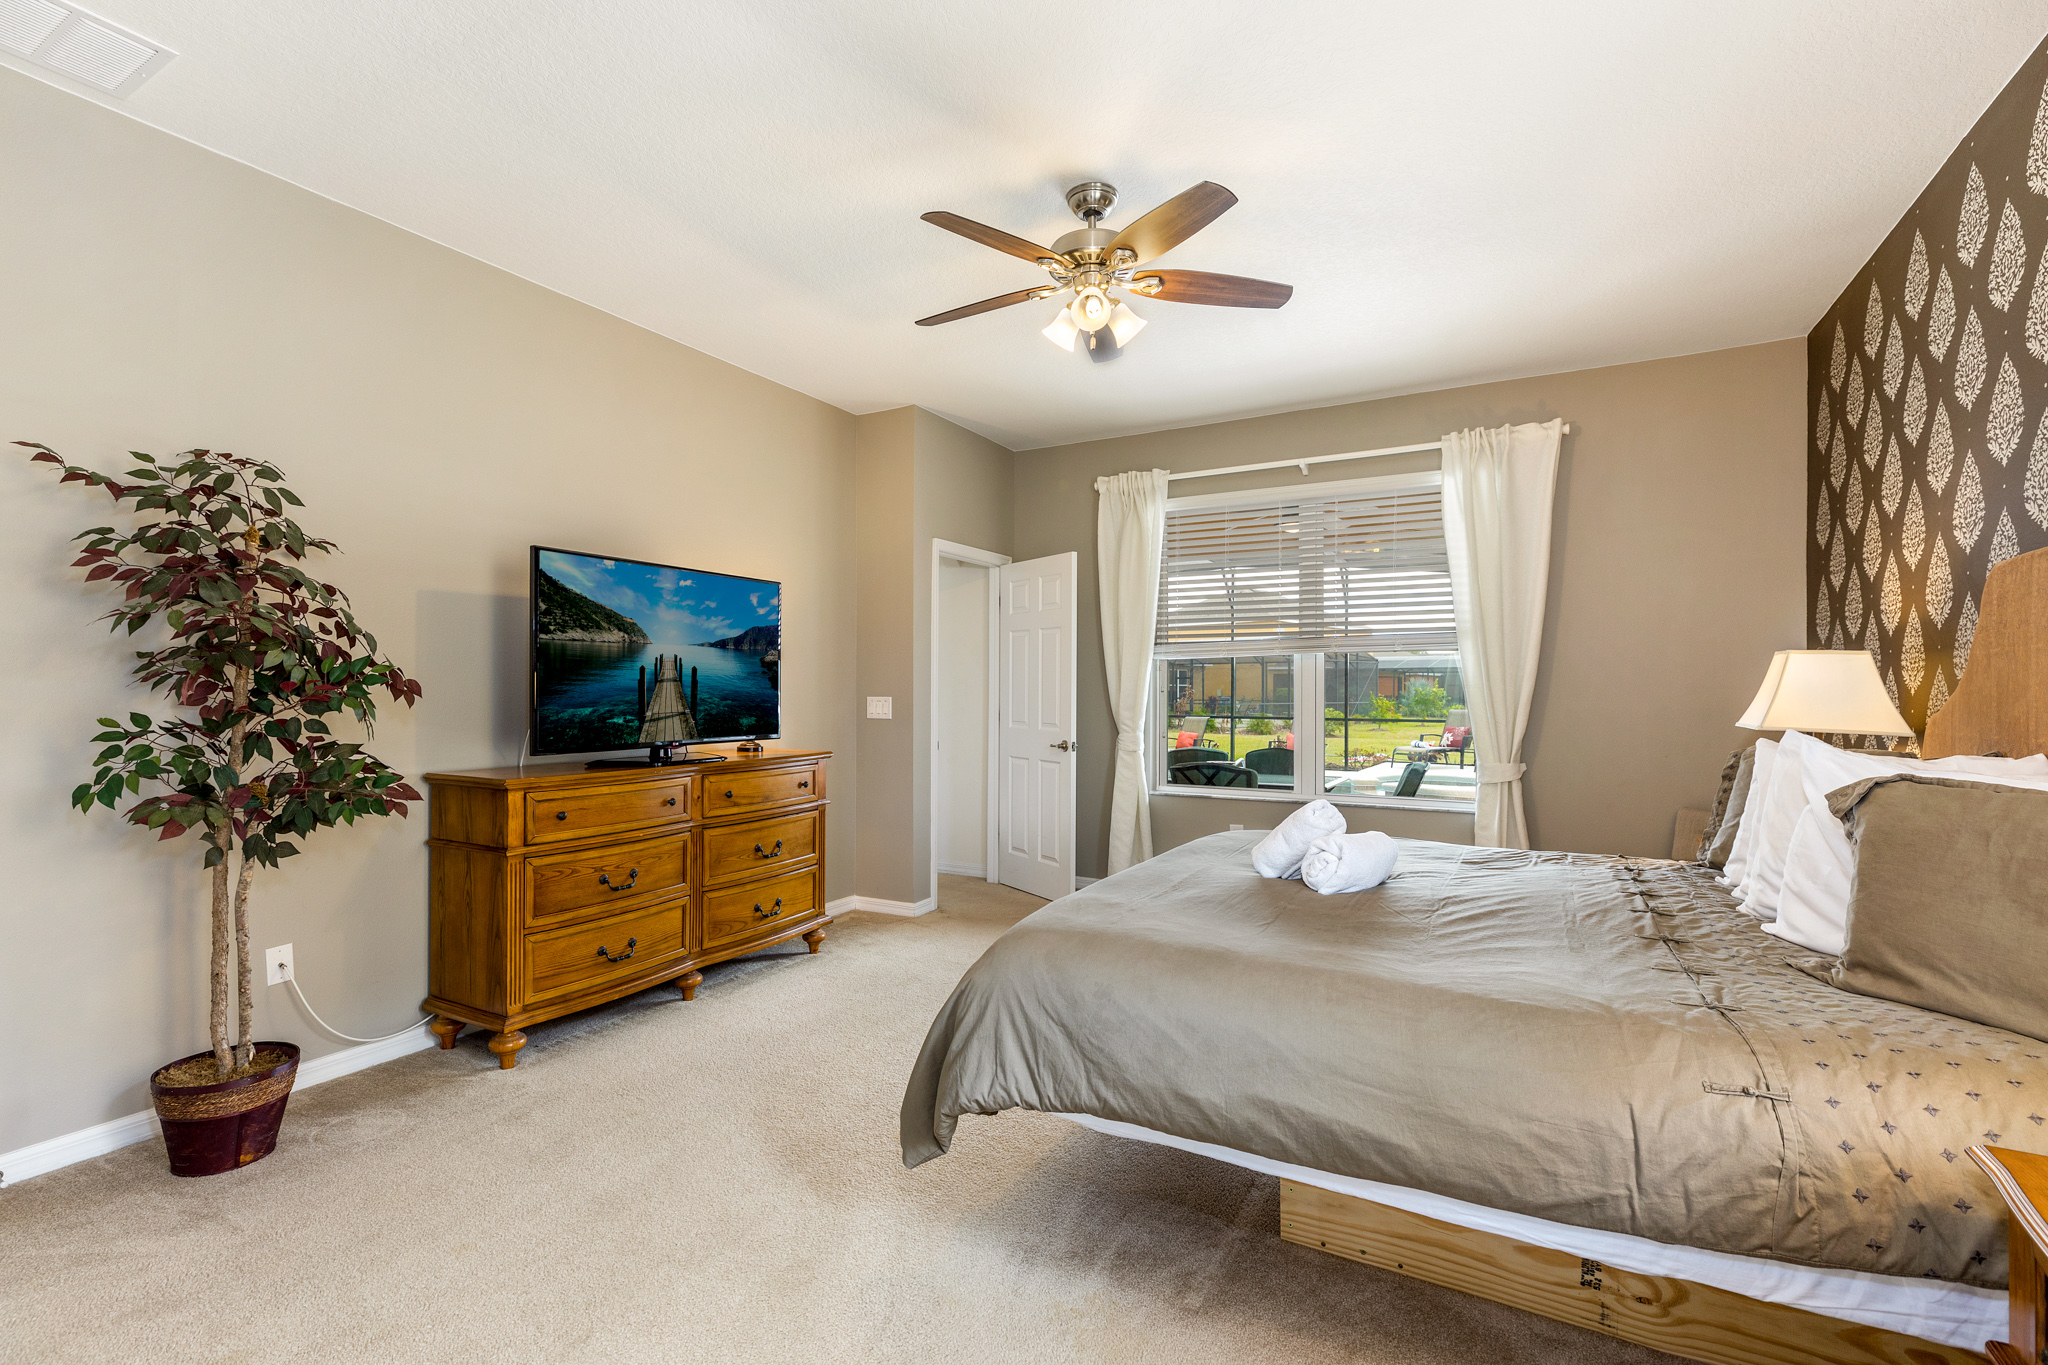 Watersong Resort/NW5984-146040